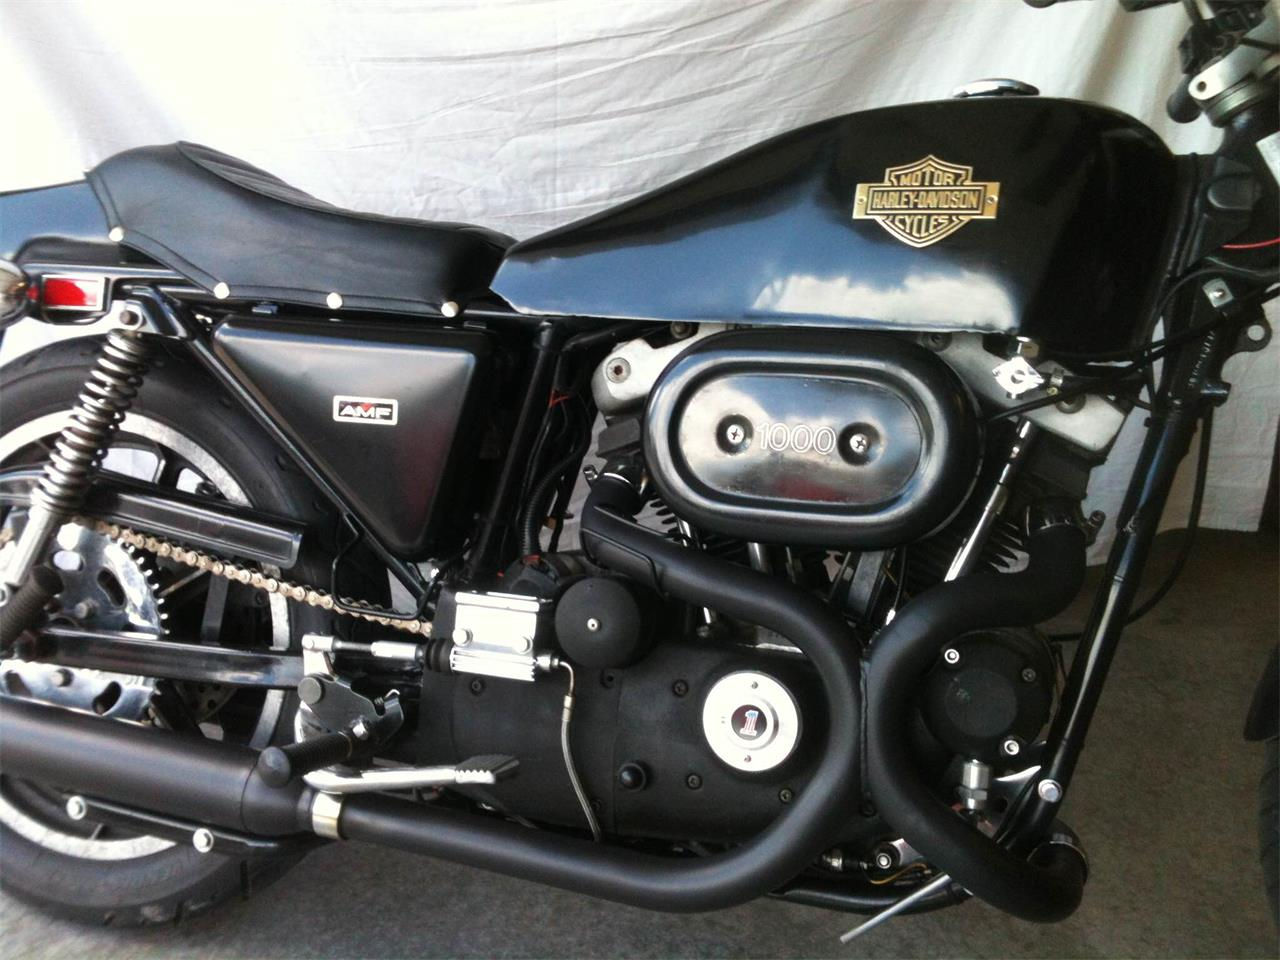 Large Picture of '78 XLCR1000 located in Corryton Tennessee - $15,000.00 Offered by a Private Seller - IFKK